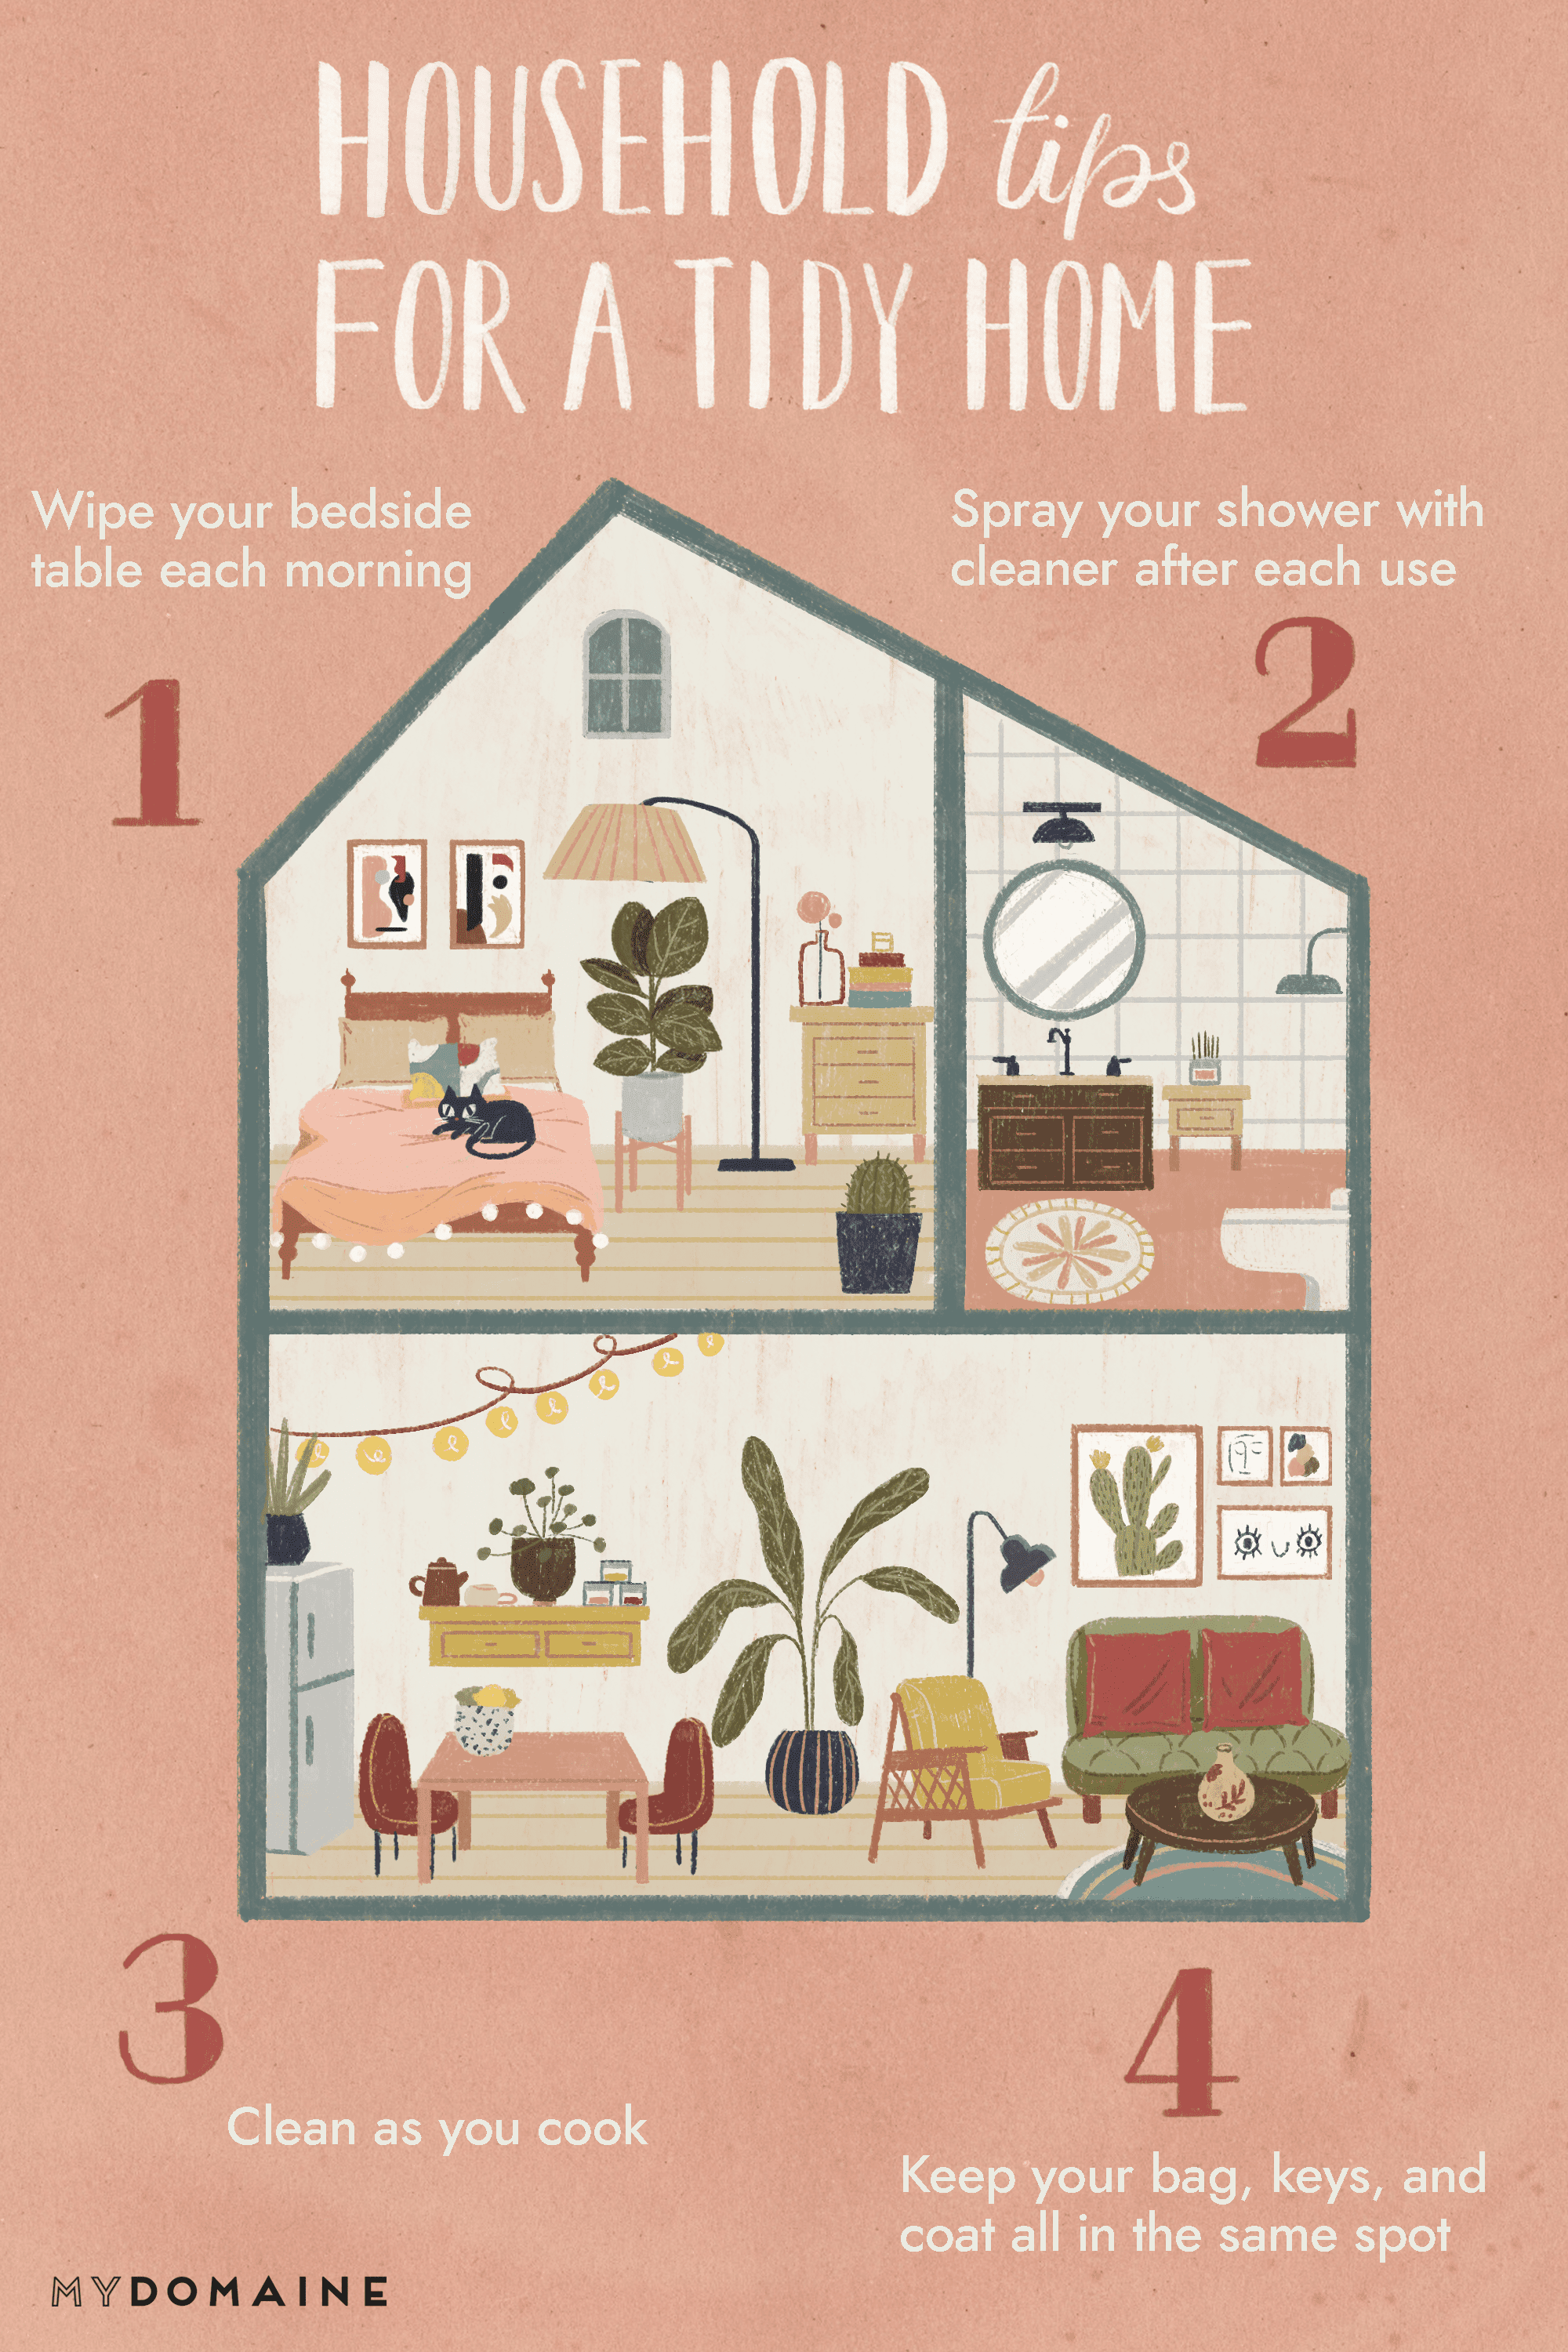 Household Tips for a Tidy Home